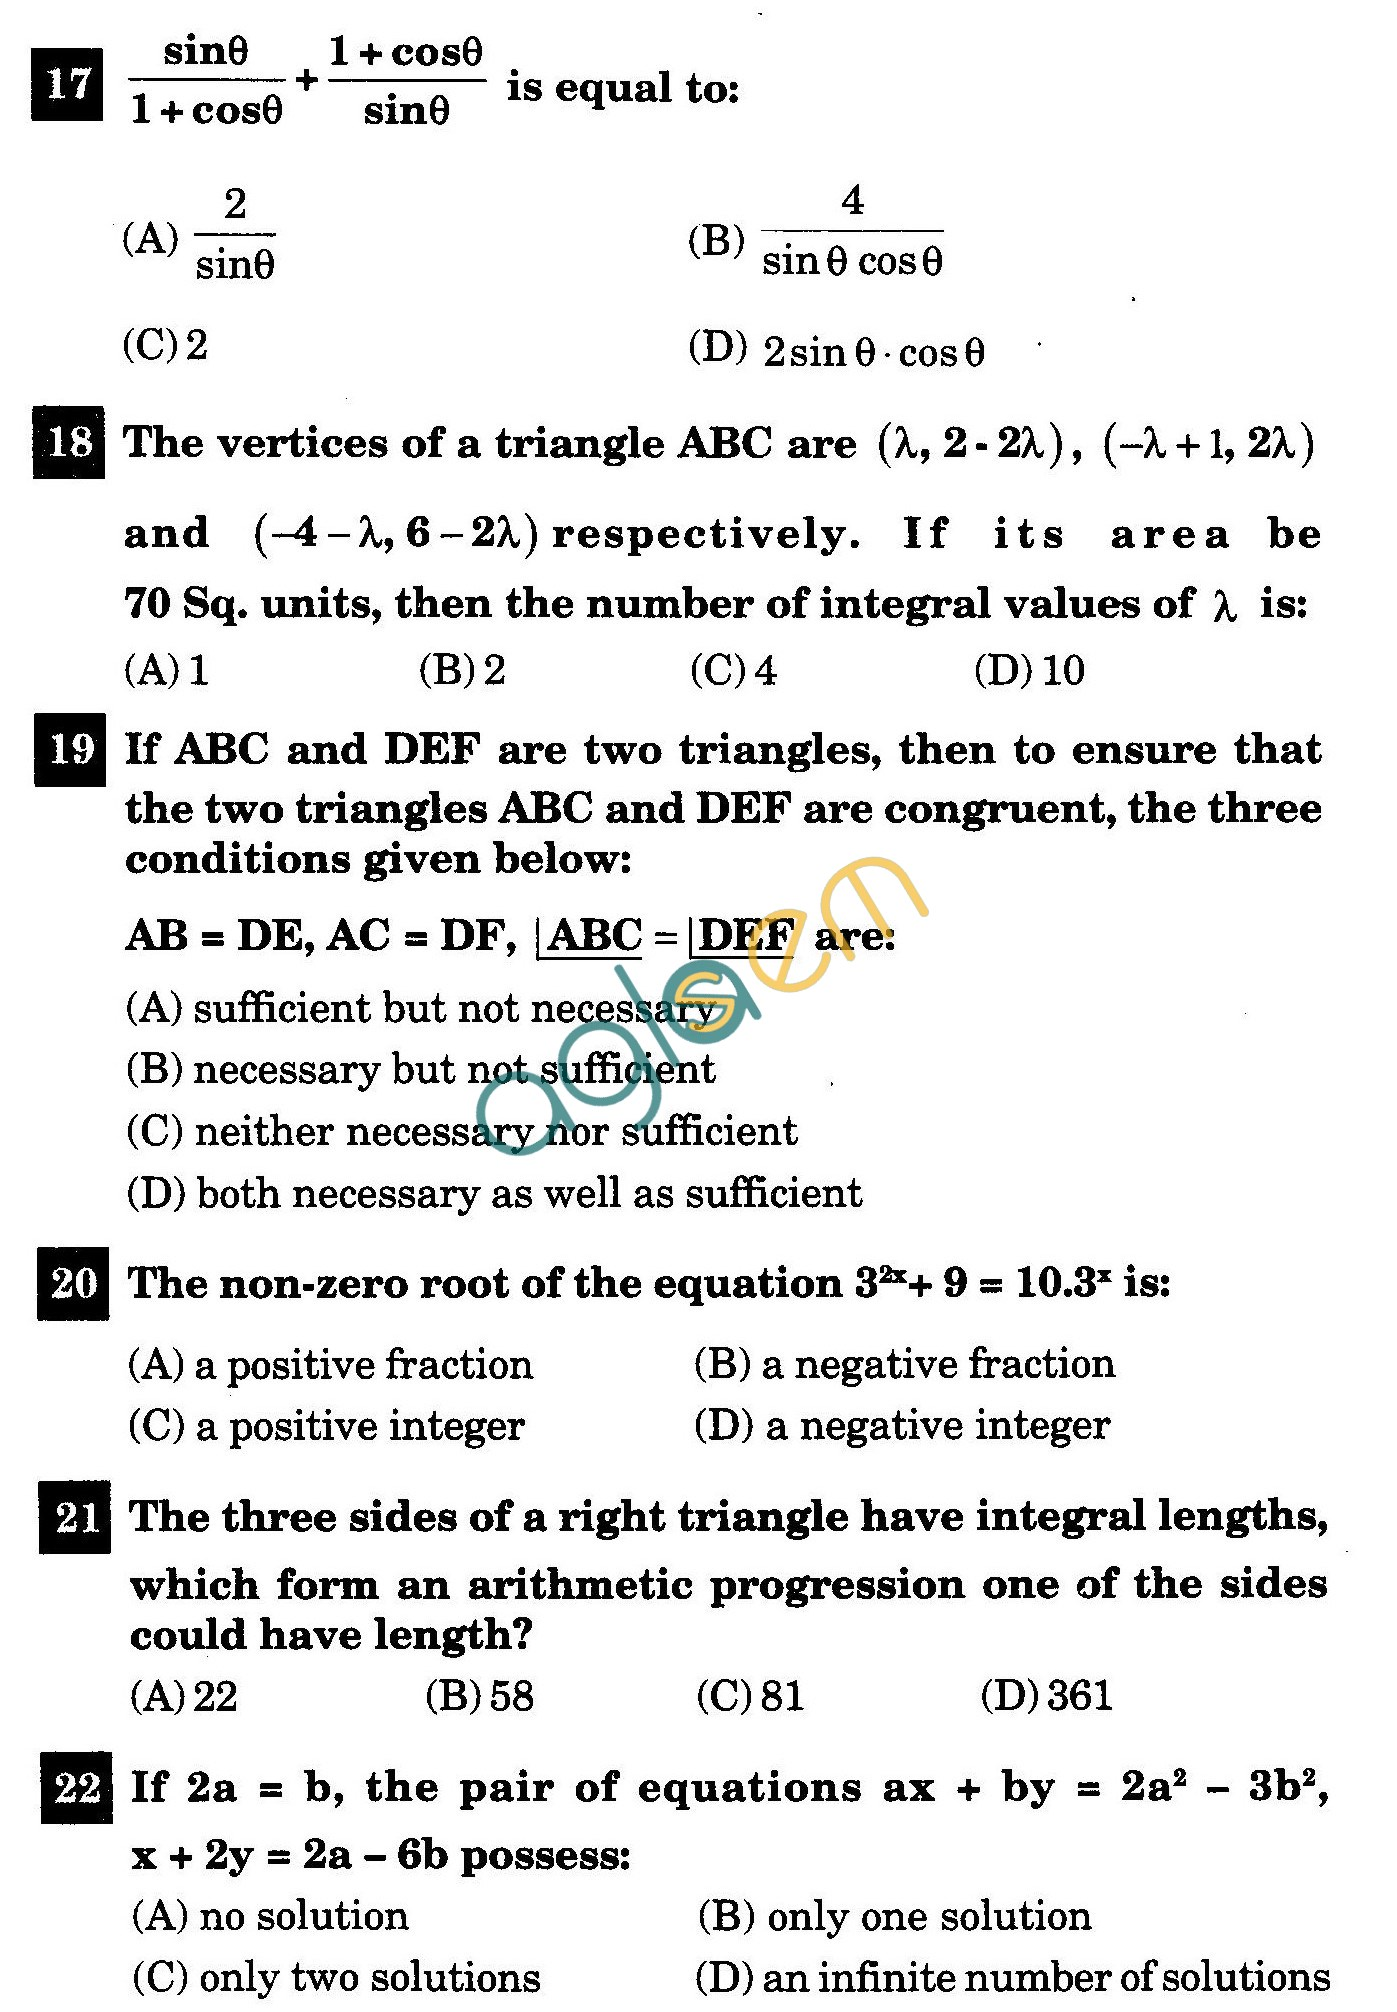 NSTSE 2011 Class X Question Paper with Answers - Mathematics